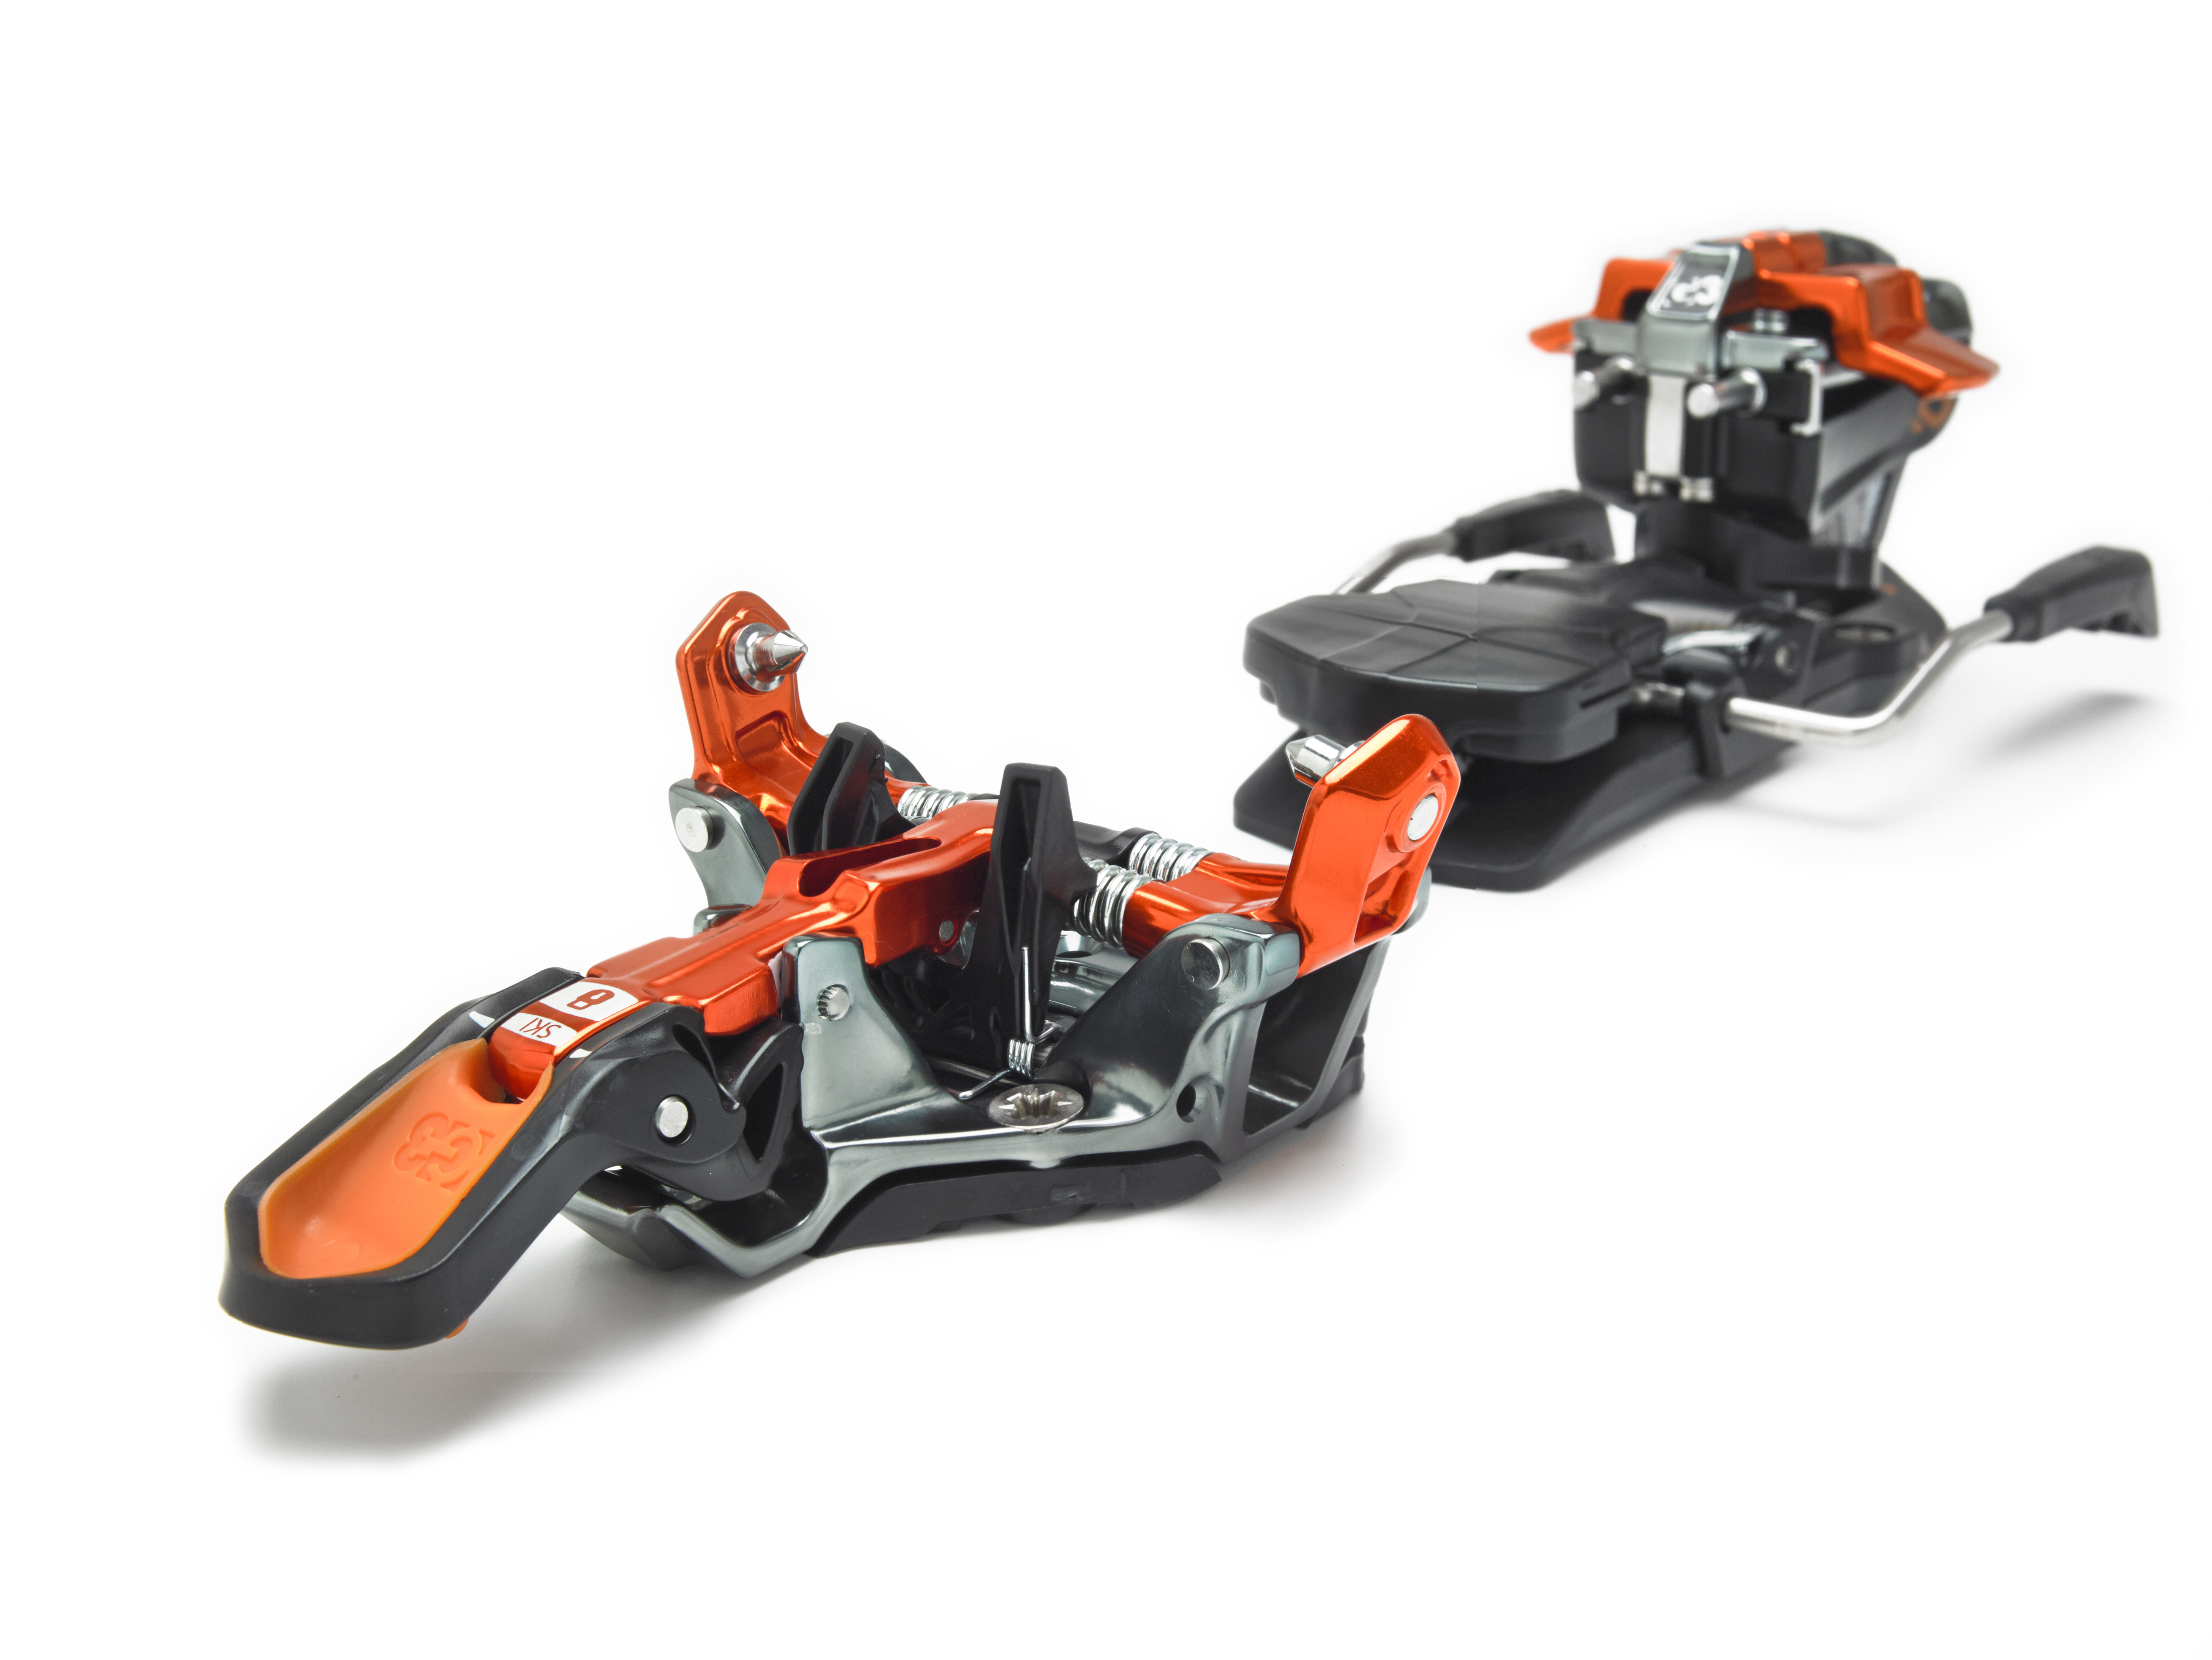 The new G3 ION touring binding